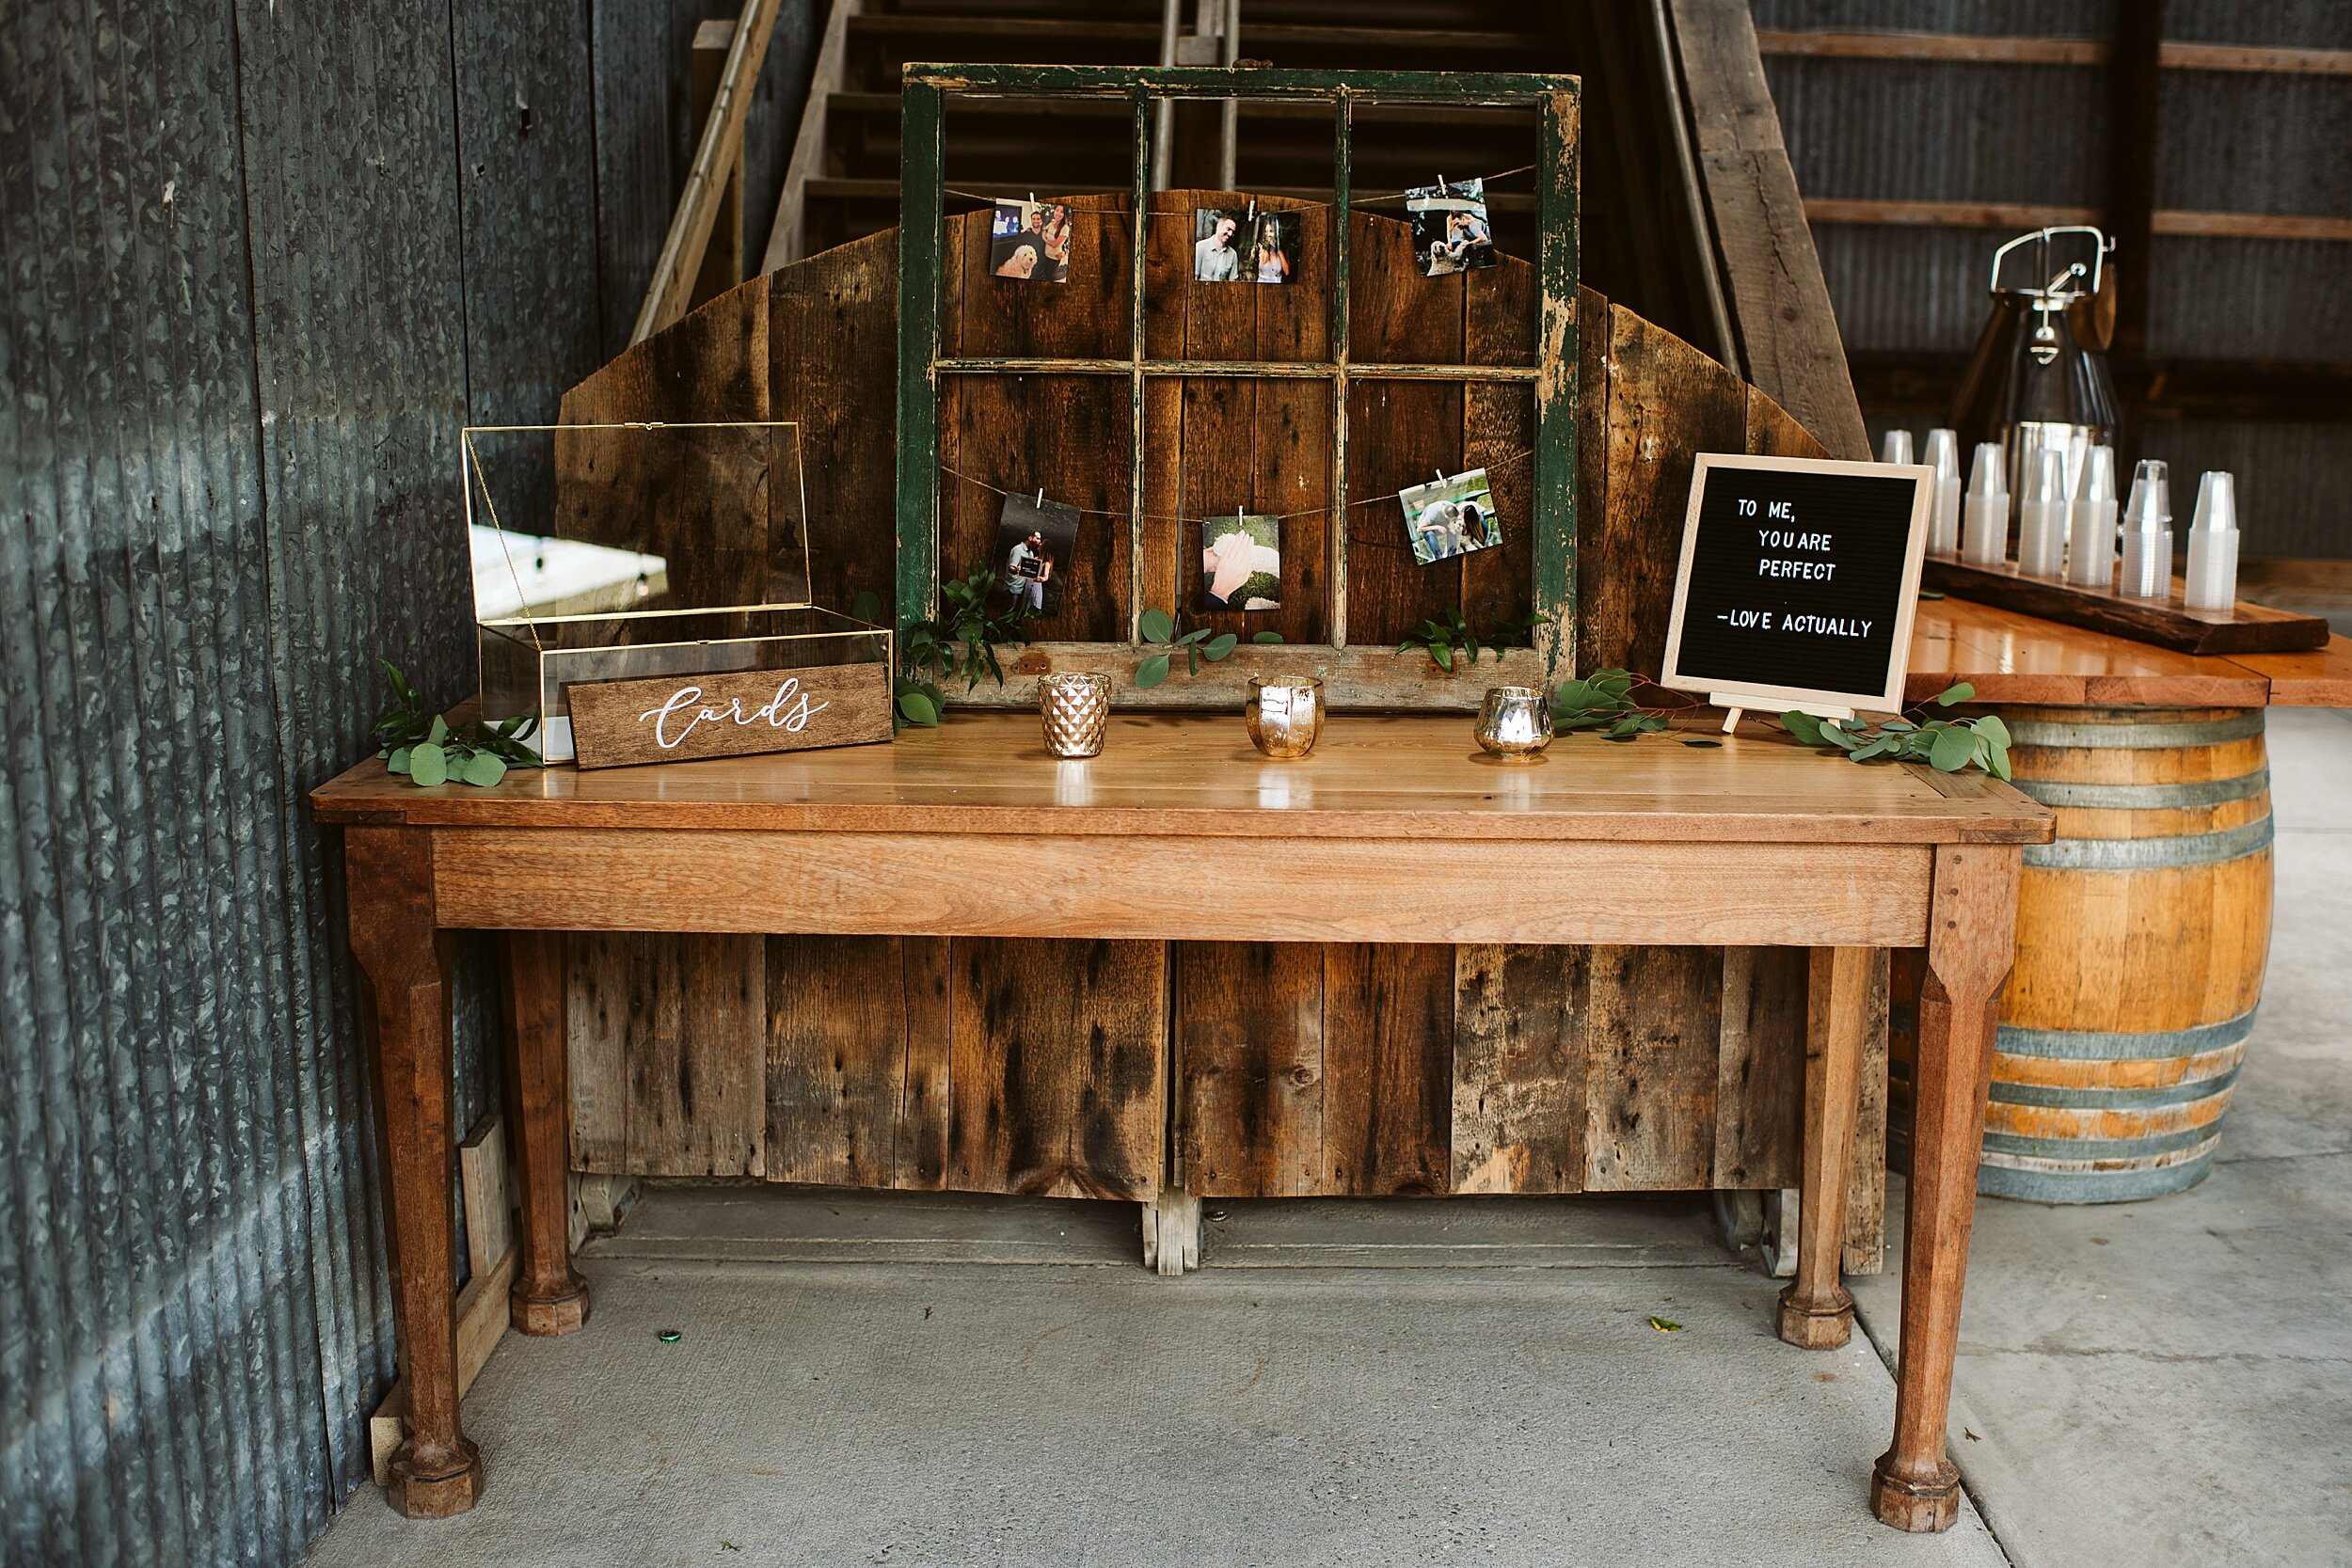 Glen_Drummon_Farm_Wedding_Toronto_Photographers_Fox_Photography_Dyments_0074.jpg